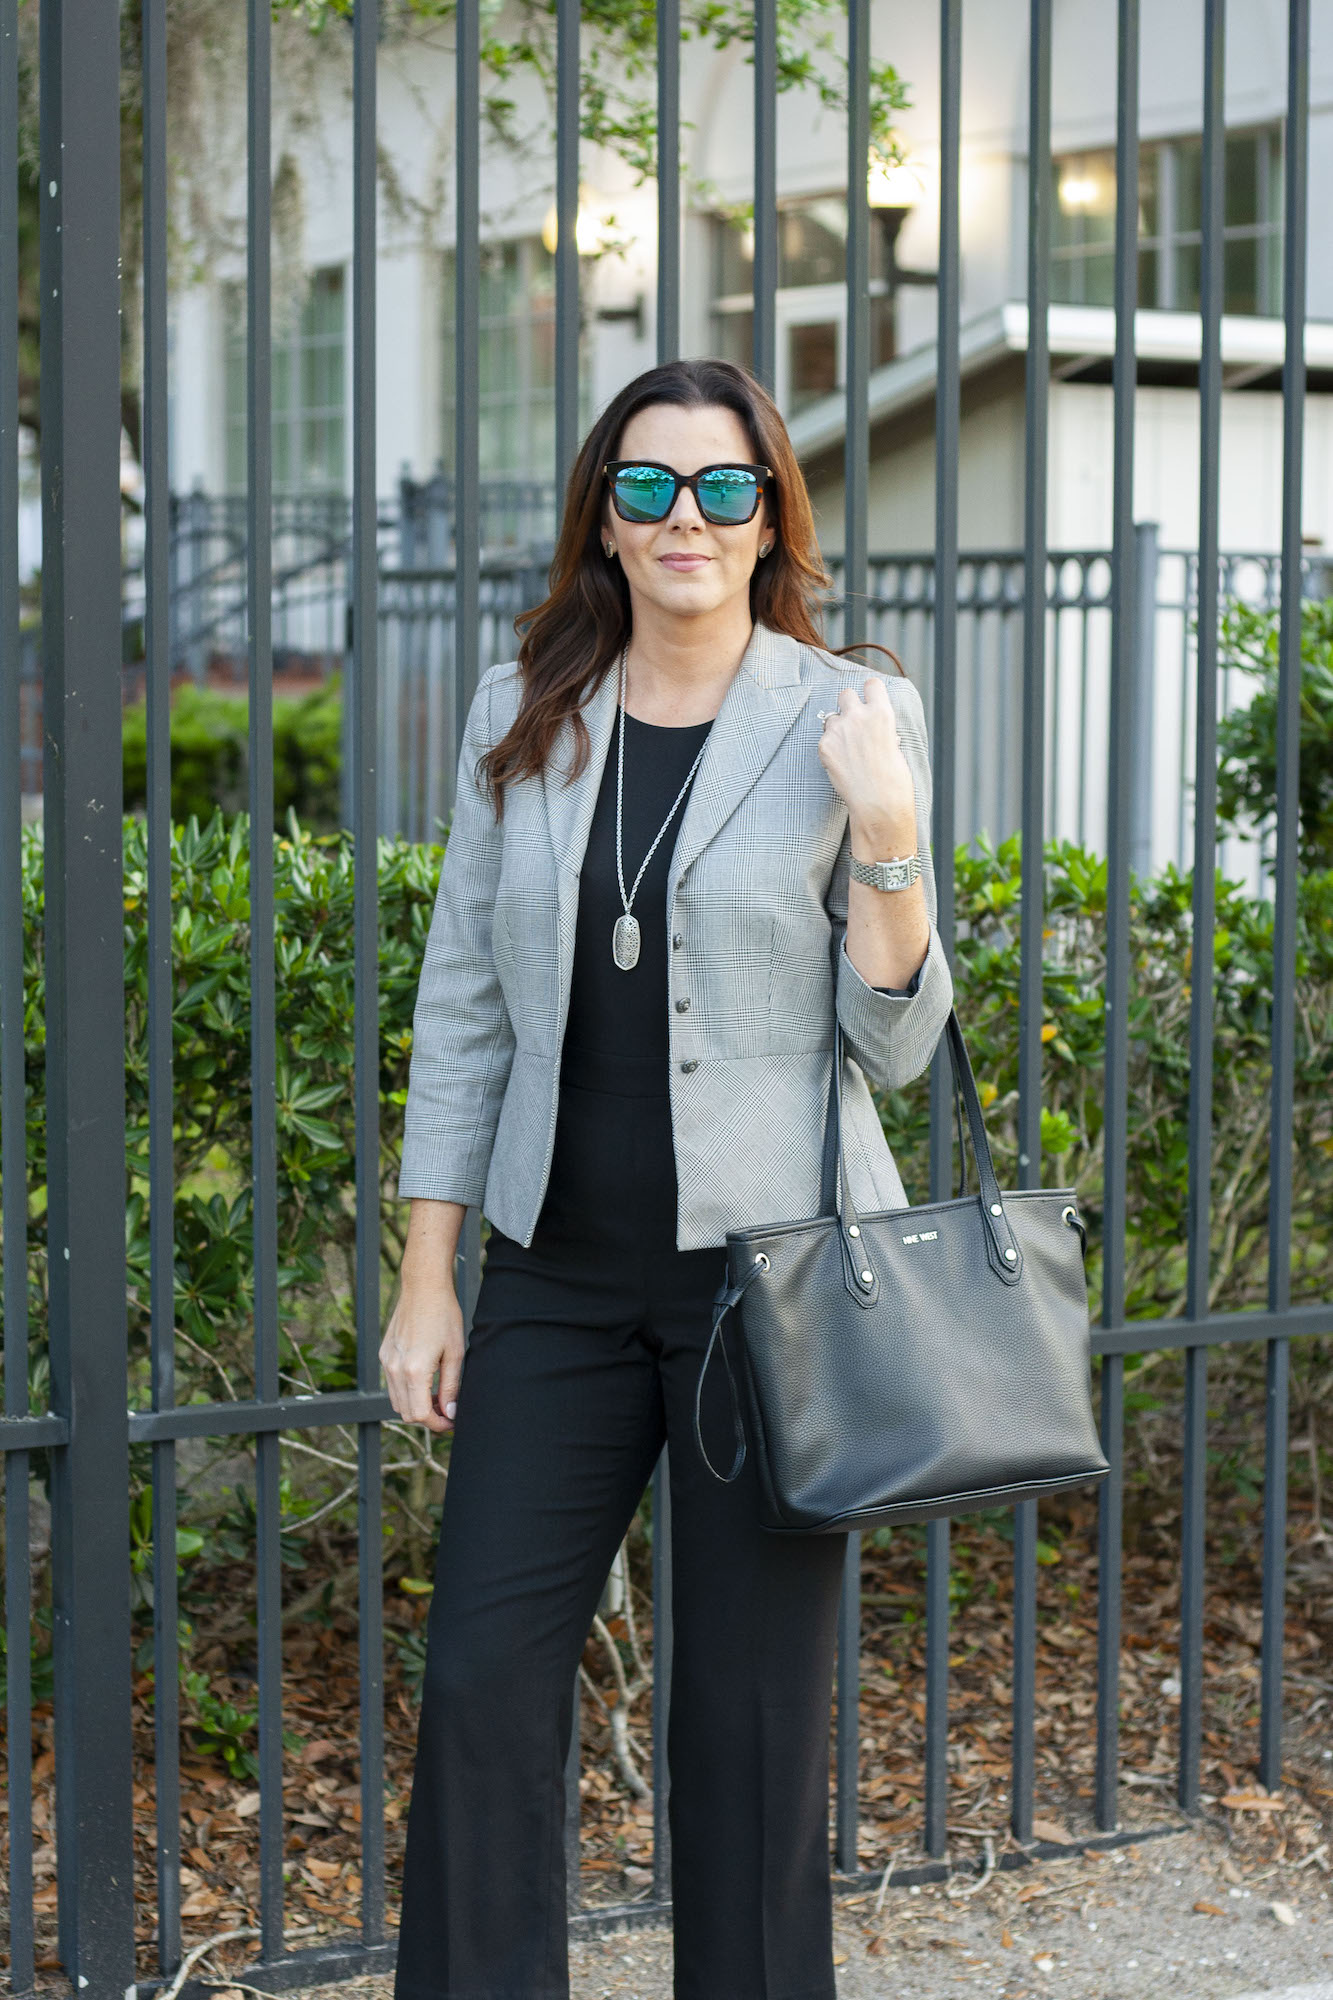 Fashion blog, corporate style, business professional, work wear, jumpsuit at work